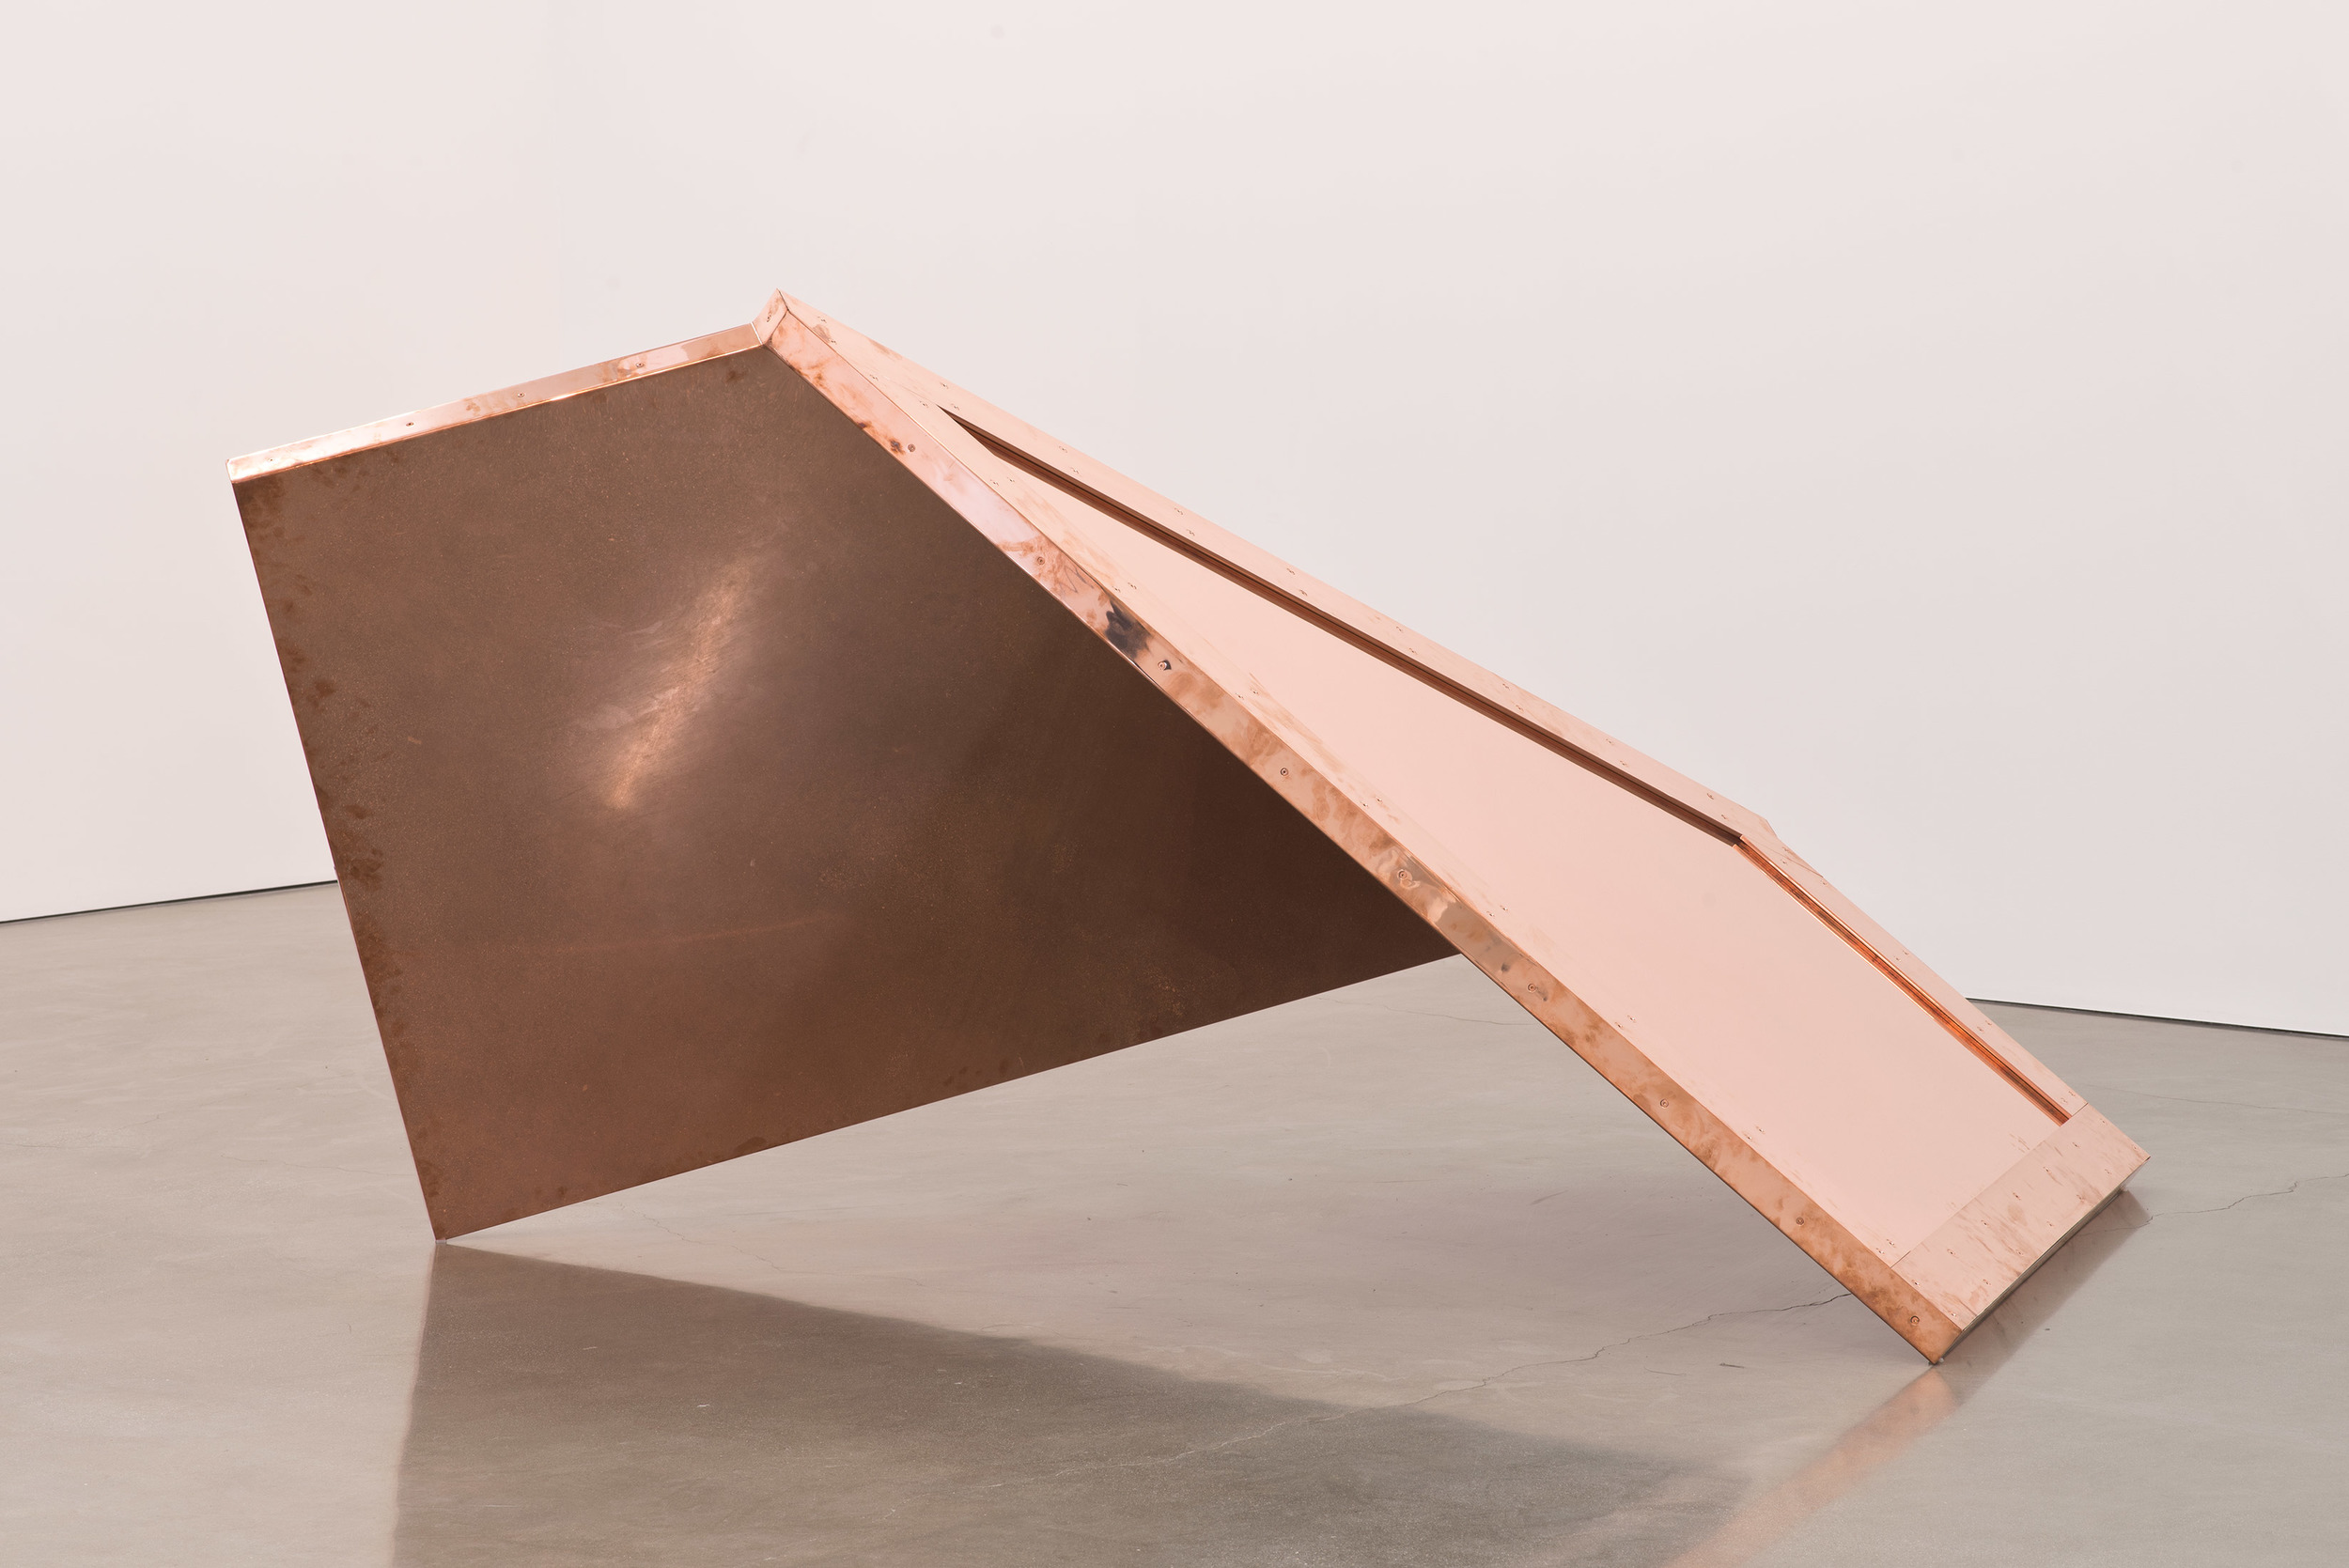 "Copper Surrogate (60"" x 120"" 48 ounce C11000 Copper Alloy, 90º Bend, 77 3/4"" 135º Antidiagonal / 45º Diagonal Bisection: February 19-21/April 5, 2014, Los Angeles, California)    2014–   Polished copper  110 x 60 x 50 inches   Selected Bodies of Work, 2014"